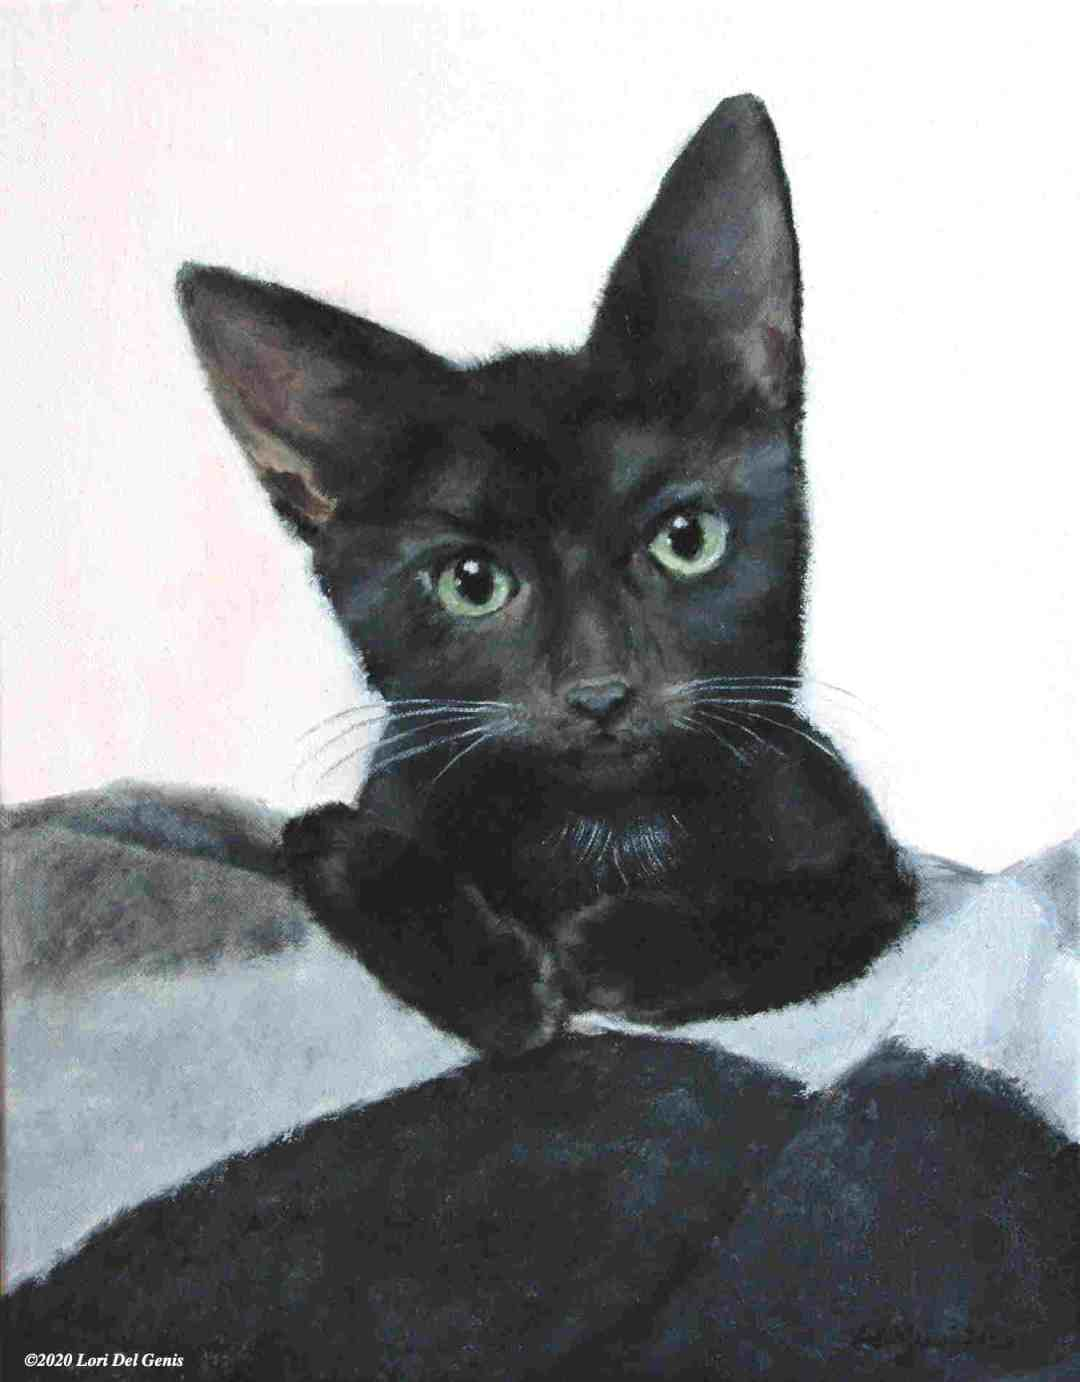 'Minnie' commissioned oil portrait of a black kitten with green eyes by Lori Del Genis (2020)